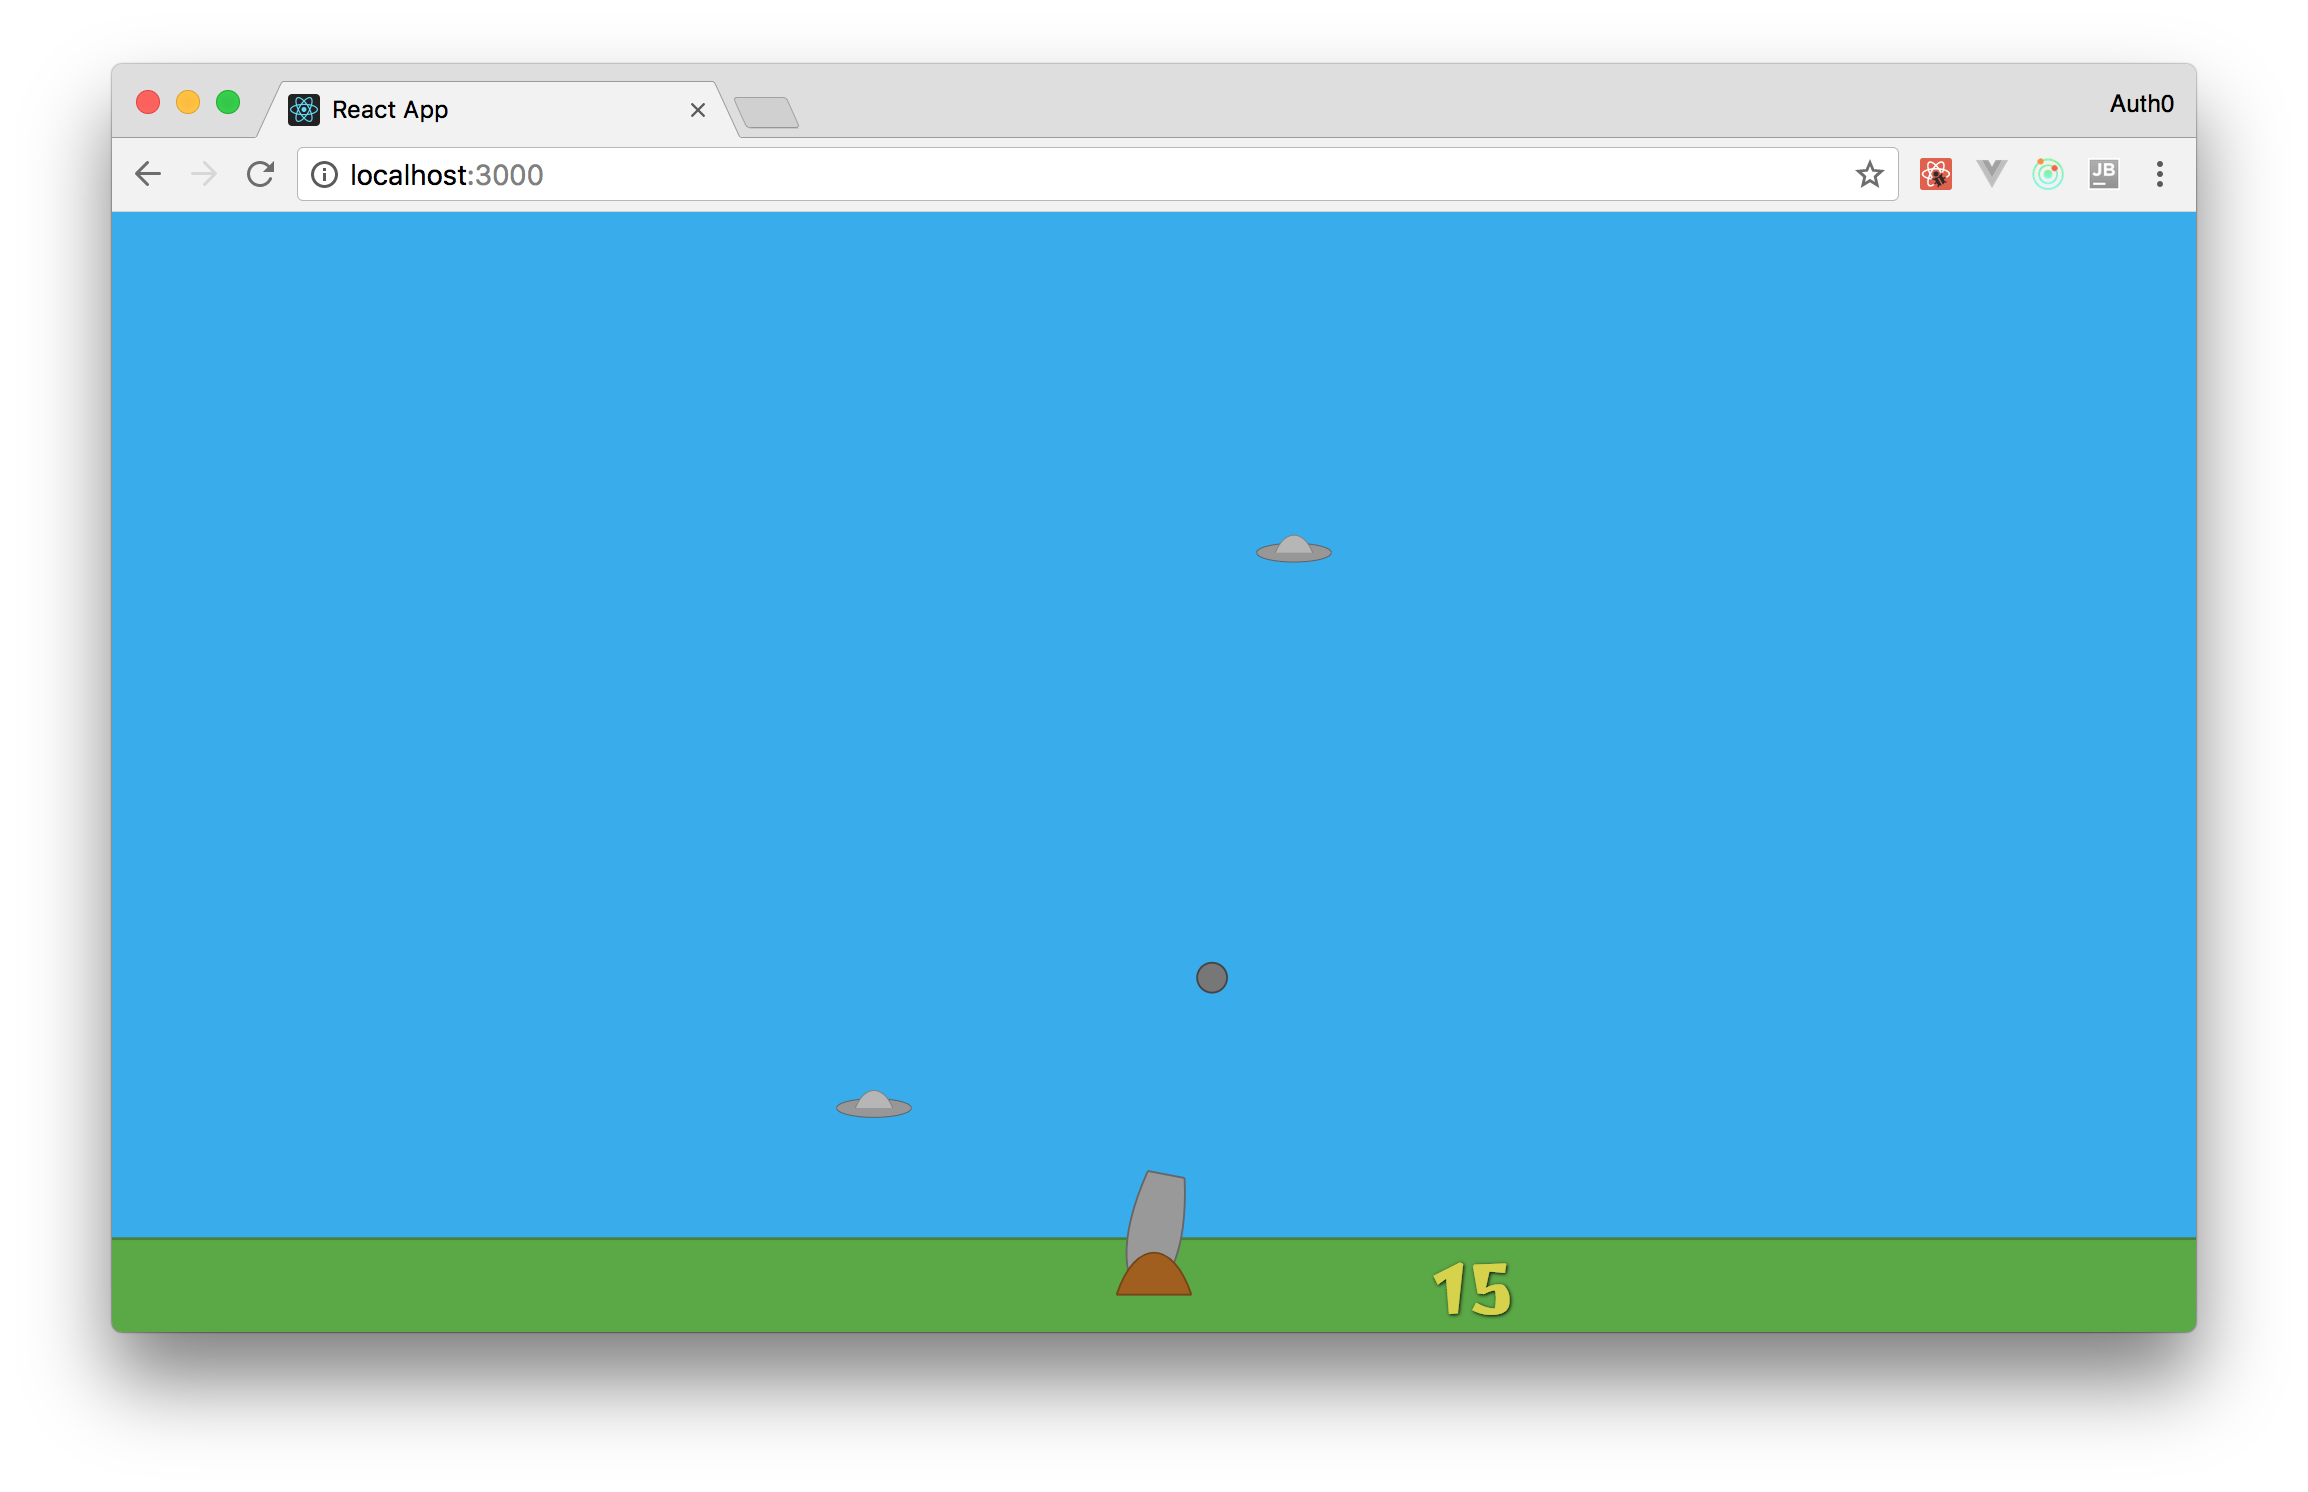 Enabling players to shoot cannon balls in a game created with React, Redux, and SVGs.